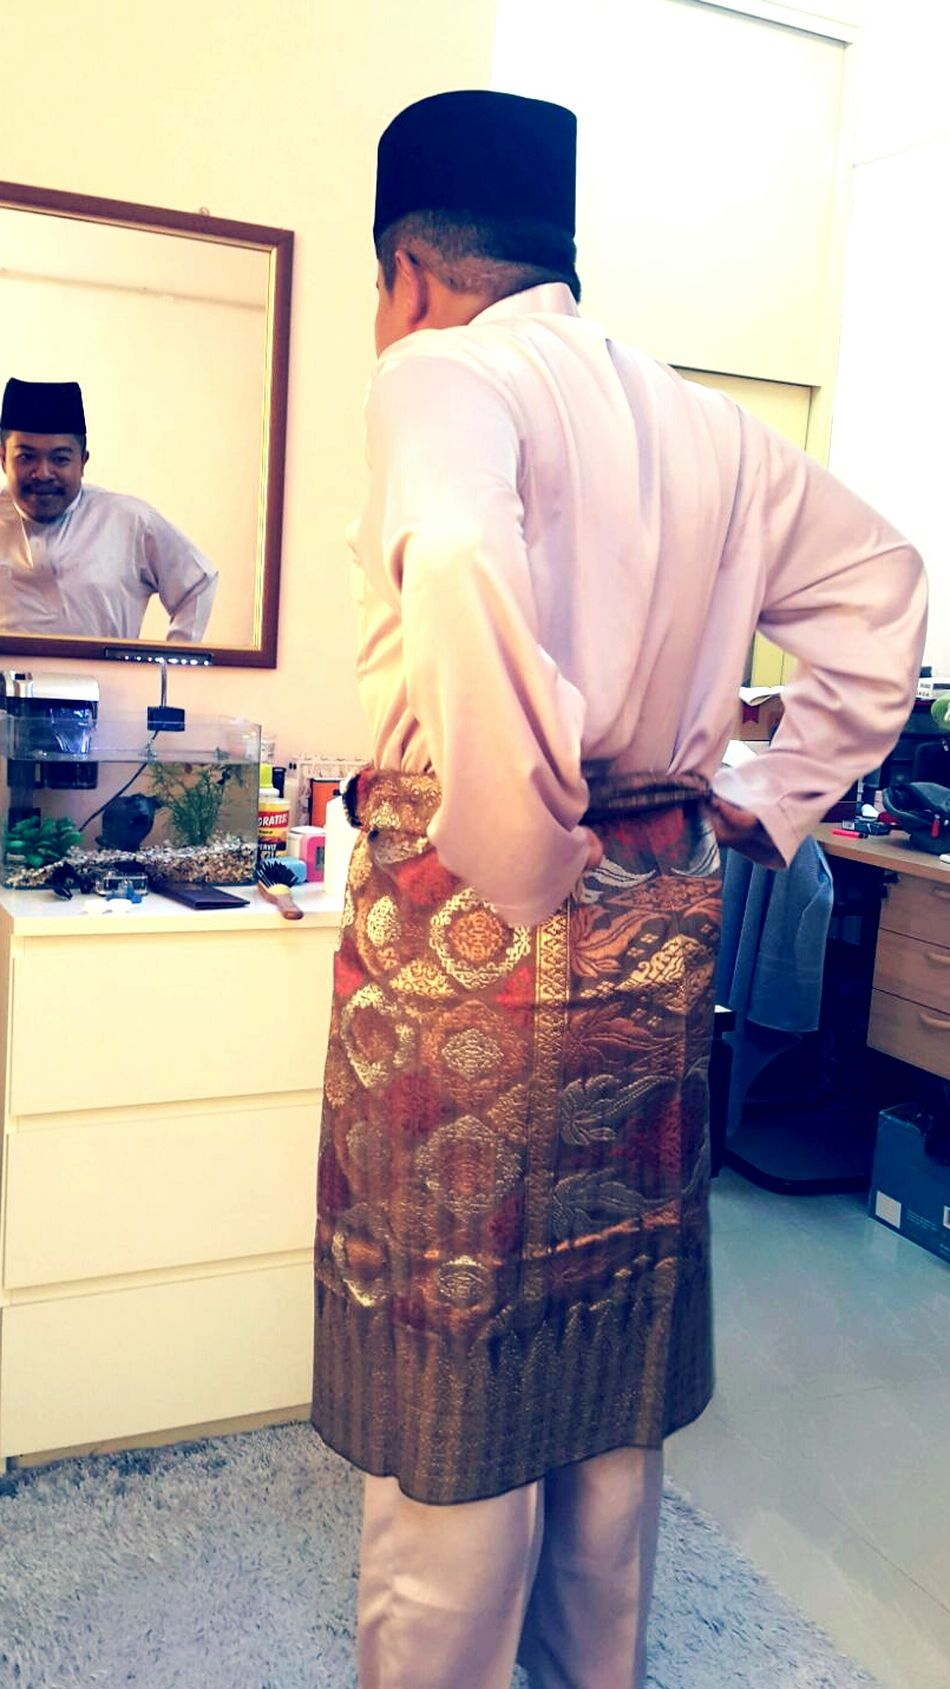 Trying Out Malay Suit for Eid Mubarak Songket Art Of Songket Melayu